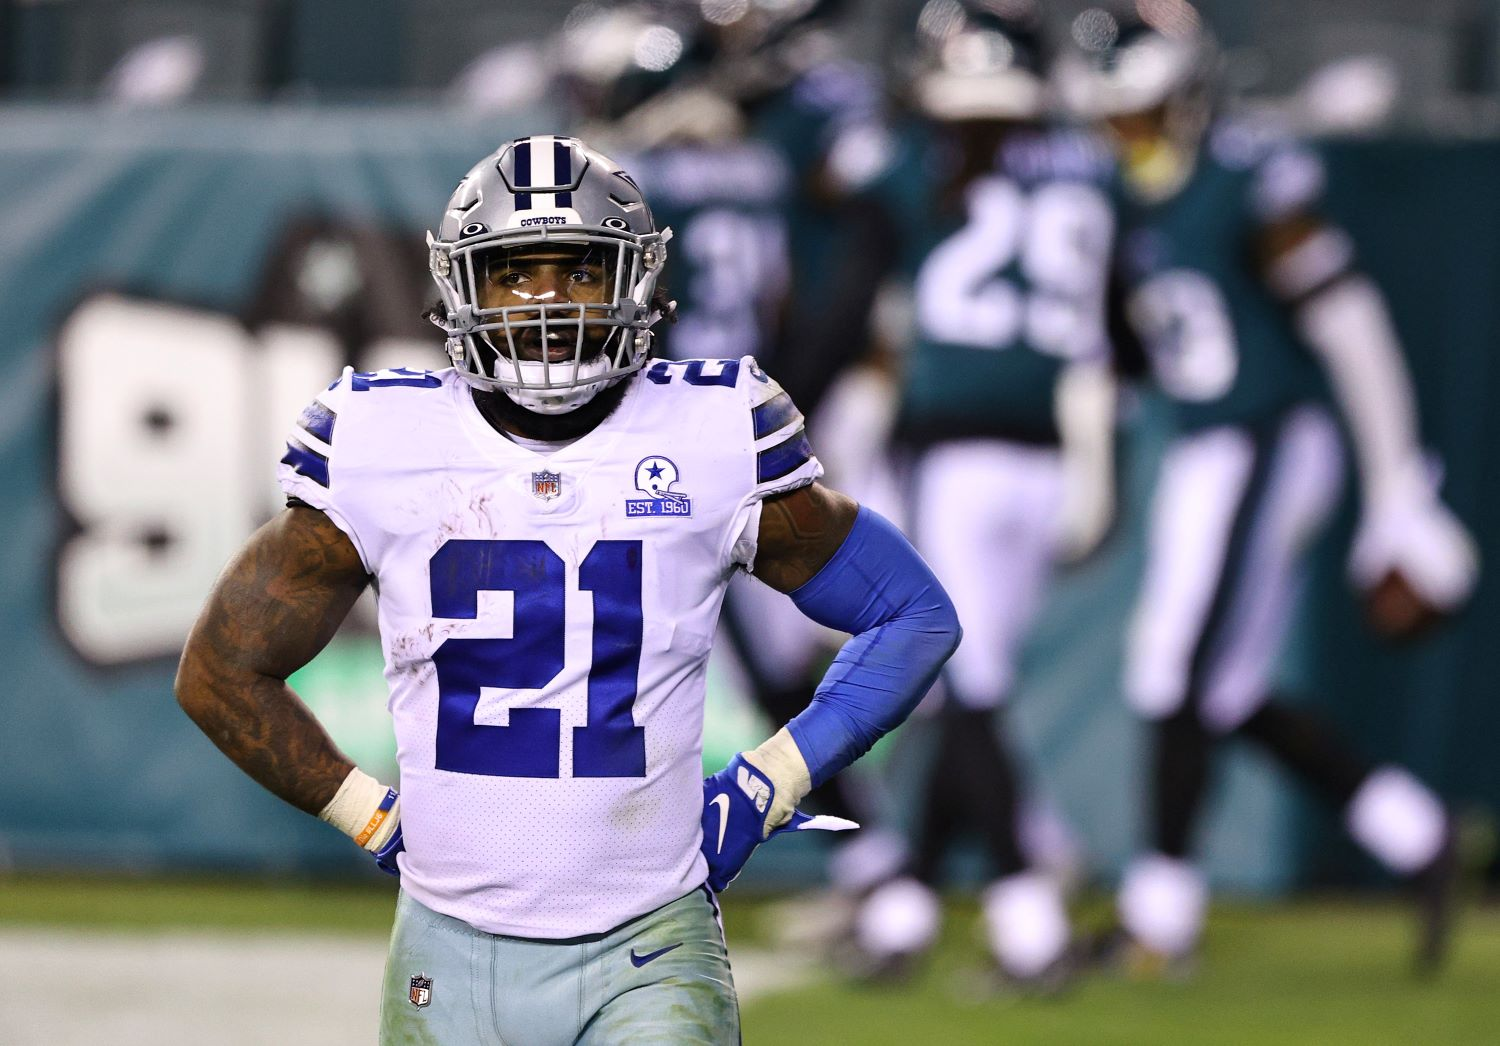 Ezekiel Elliott just got put on blast for his disappointing play by former Dallas Cowboys defensive lineman Marcus Spears.